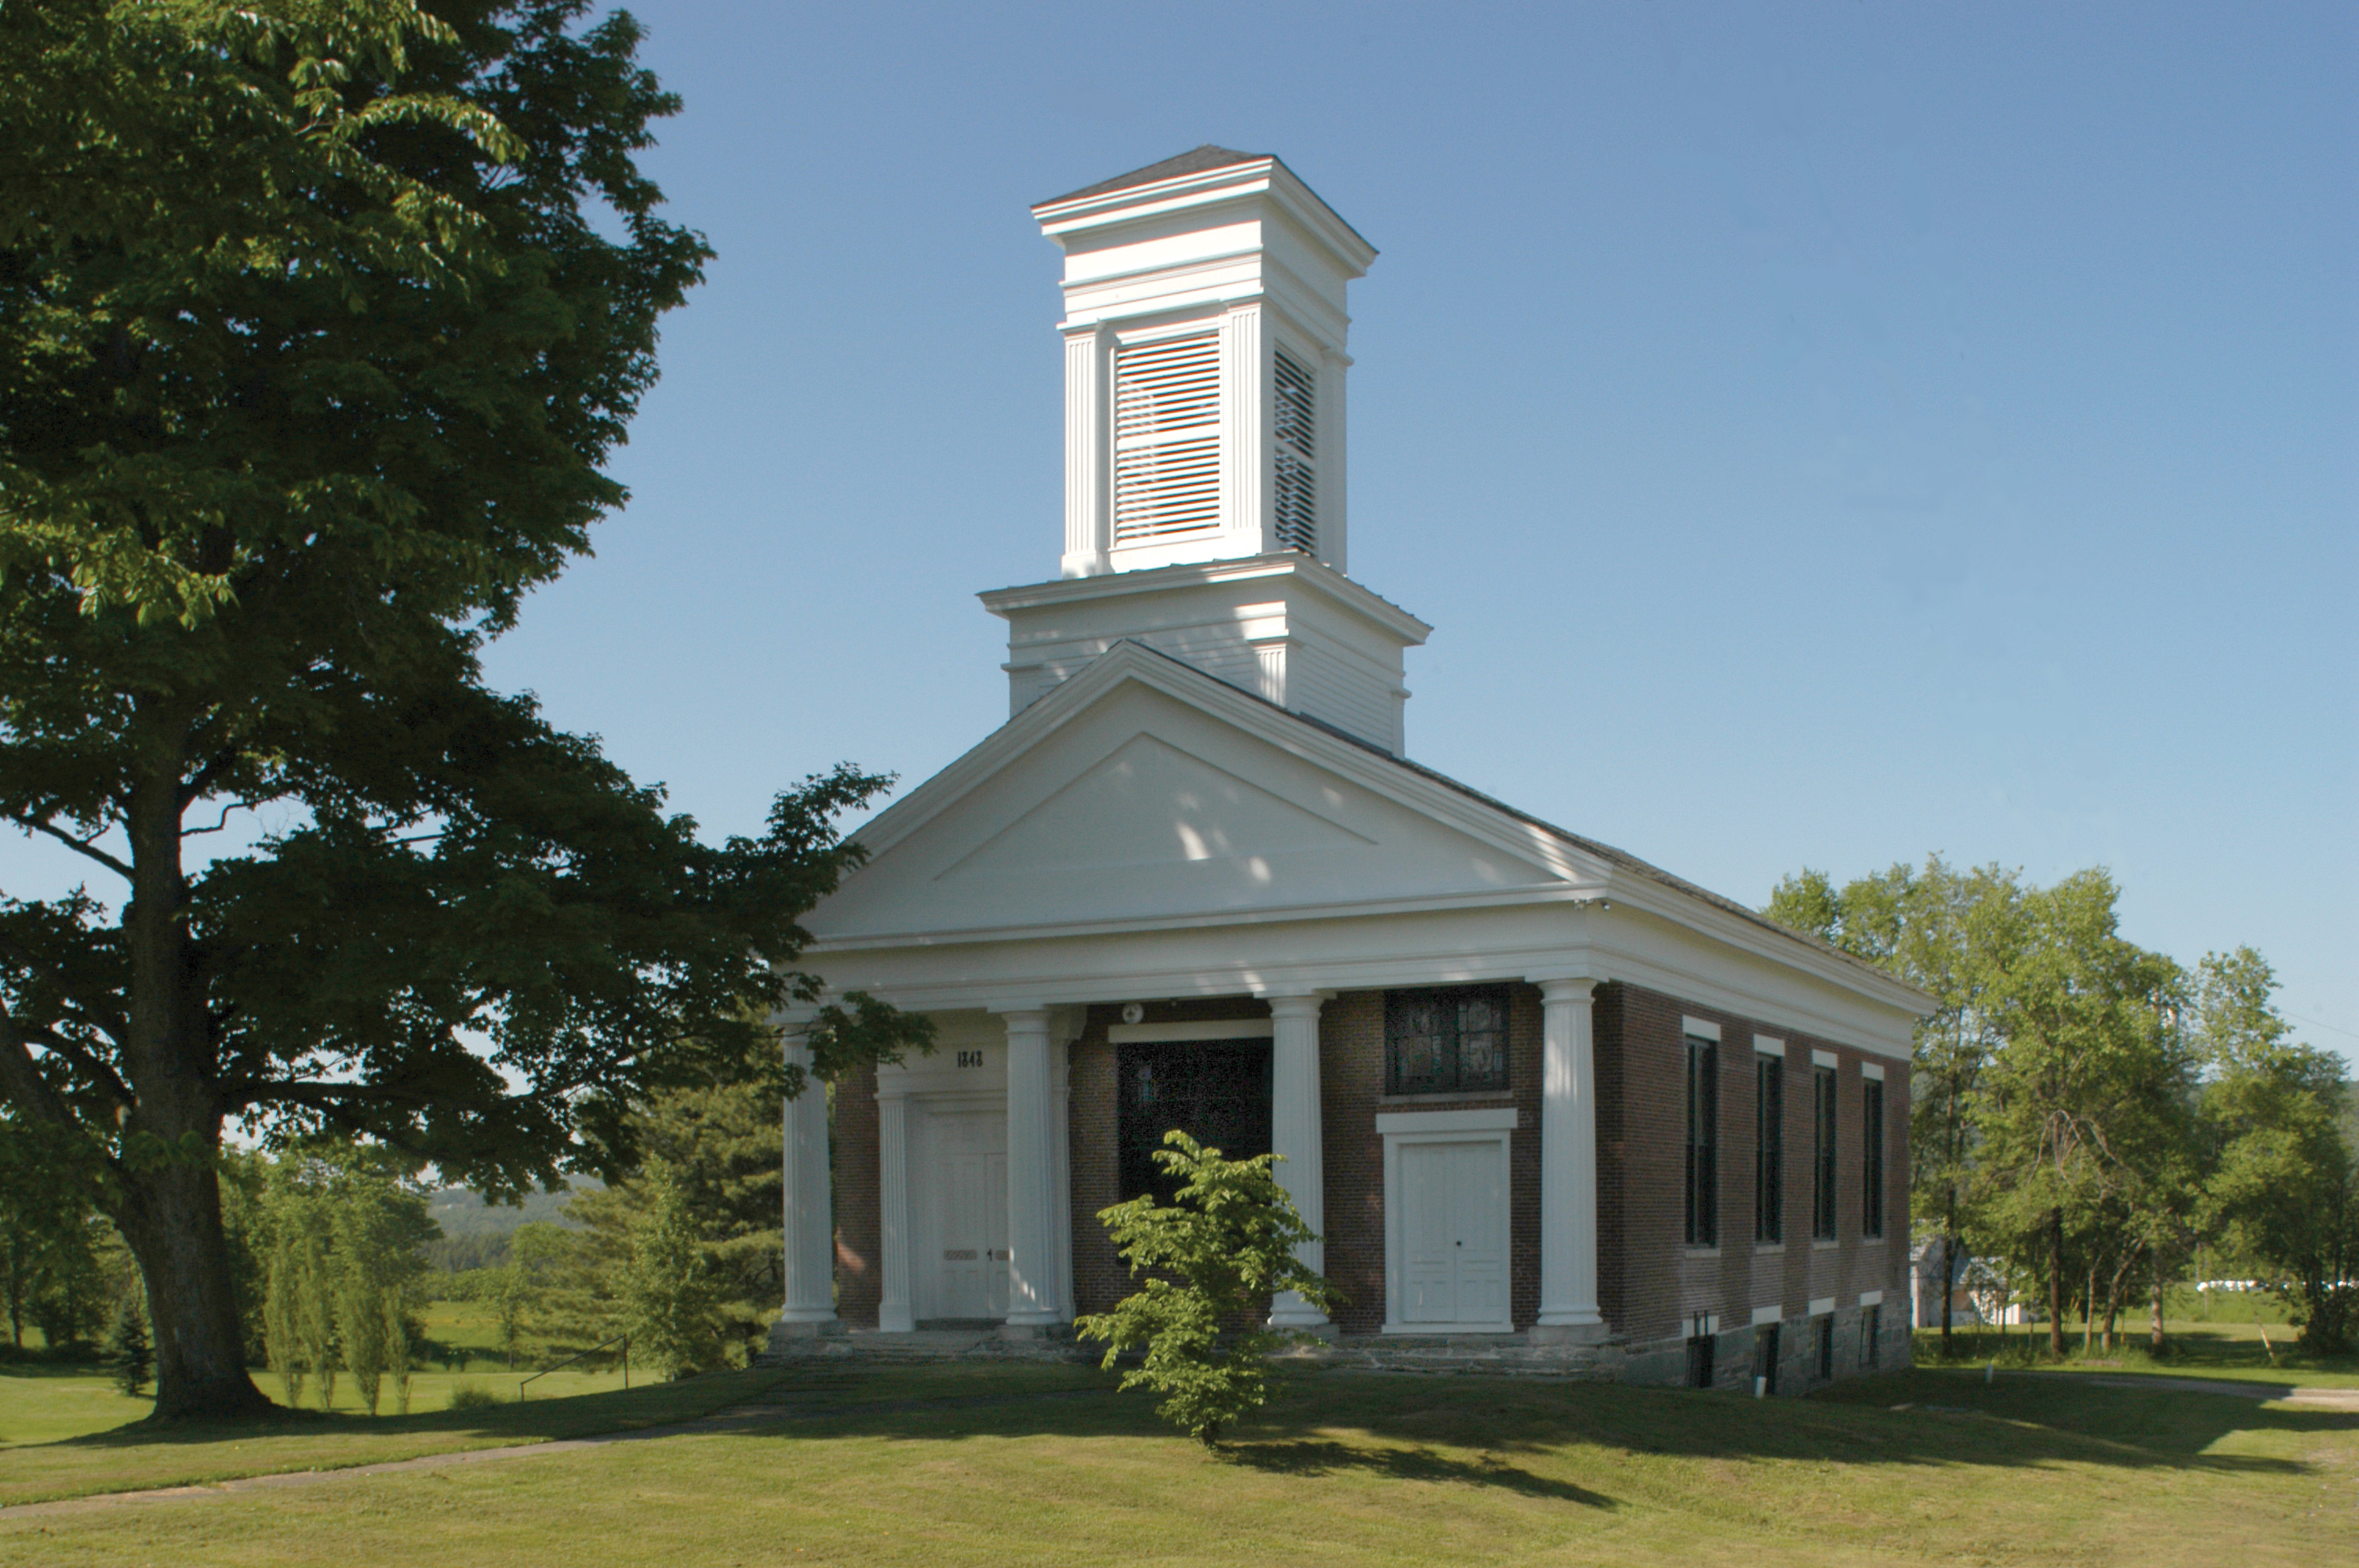 Fairfax Lamoille Lodge And First Baptist Church